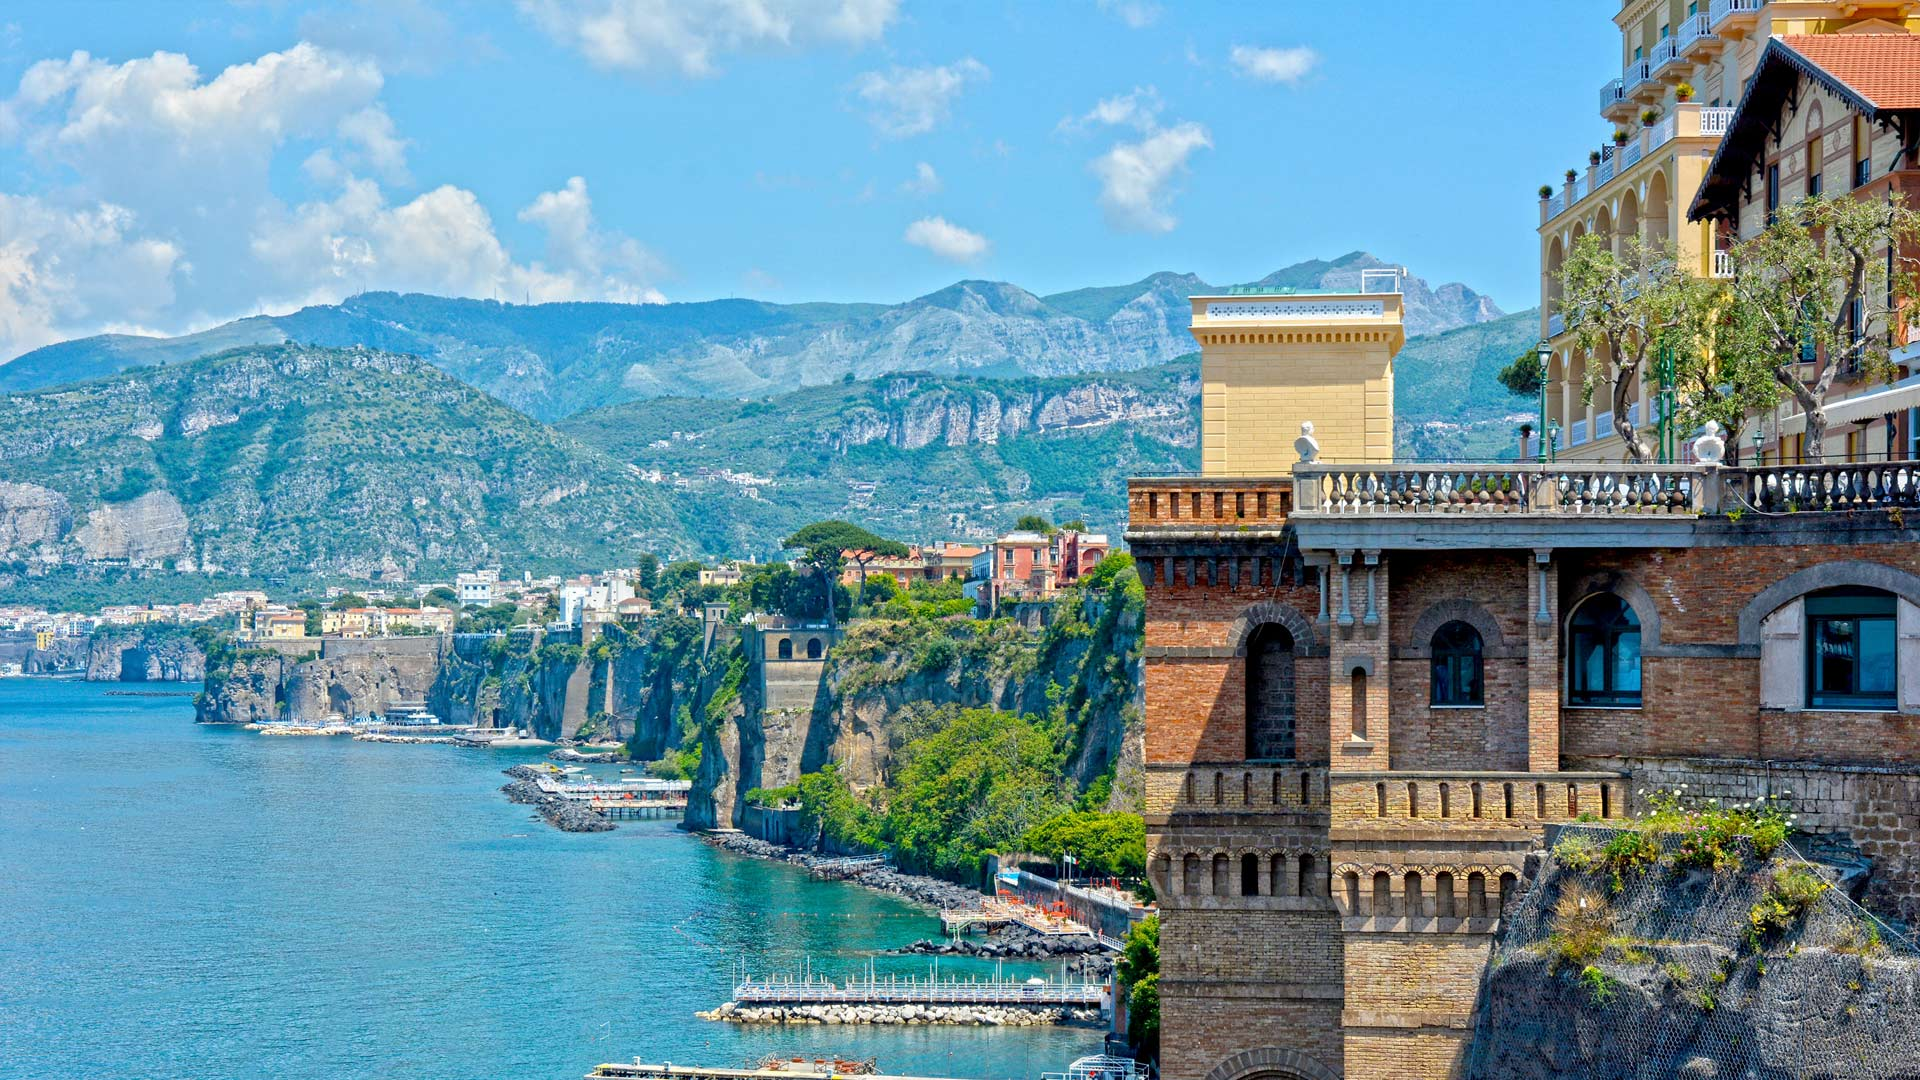 Excursions in Sorrento with Ischia Charter Boat